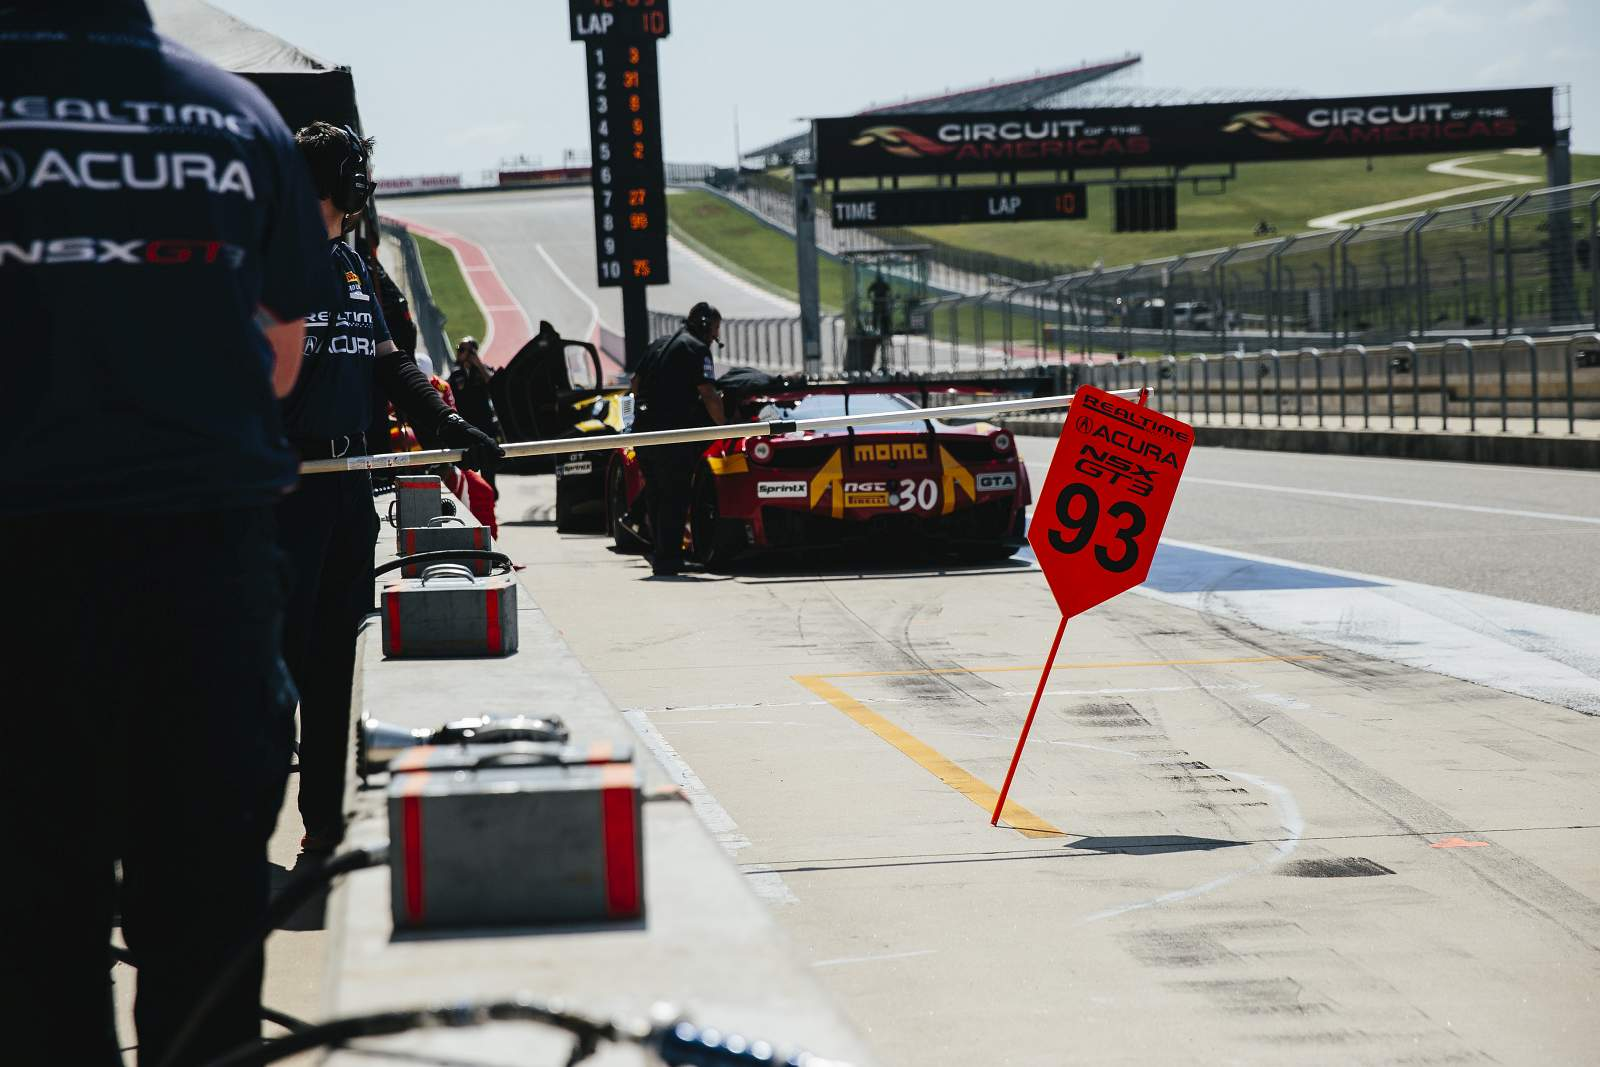 peter-kox-realtime-racing-pirelli-world-challenge-cota--023